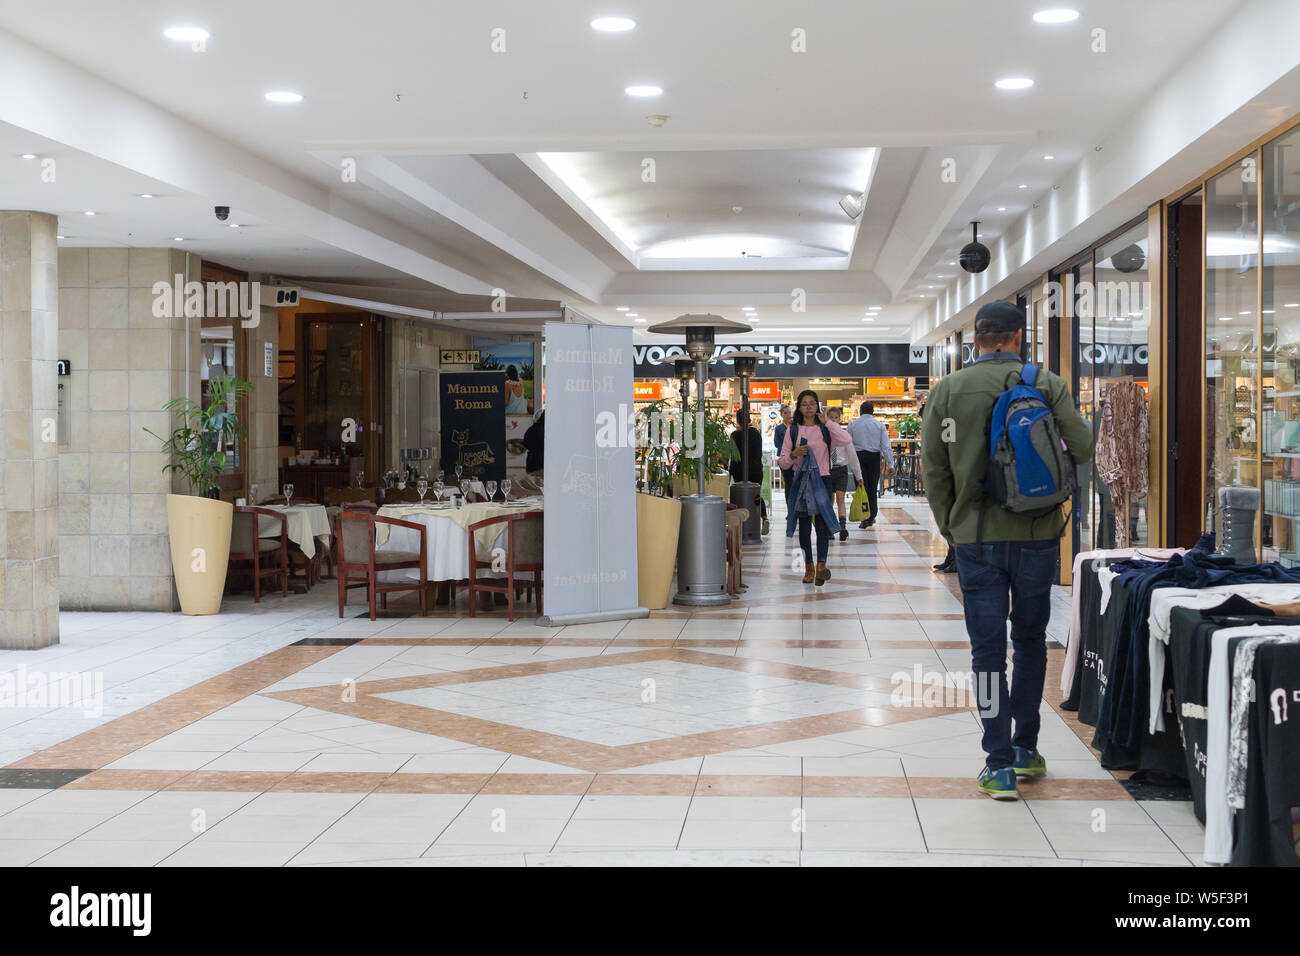 interior of a small shopping centre or mall in Cape Town, South Africa with people or shoppers walking around the shops in Winter Stock Photo